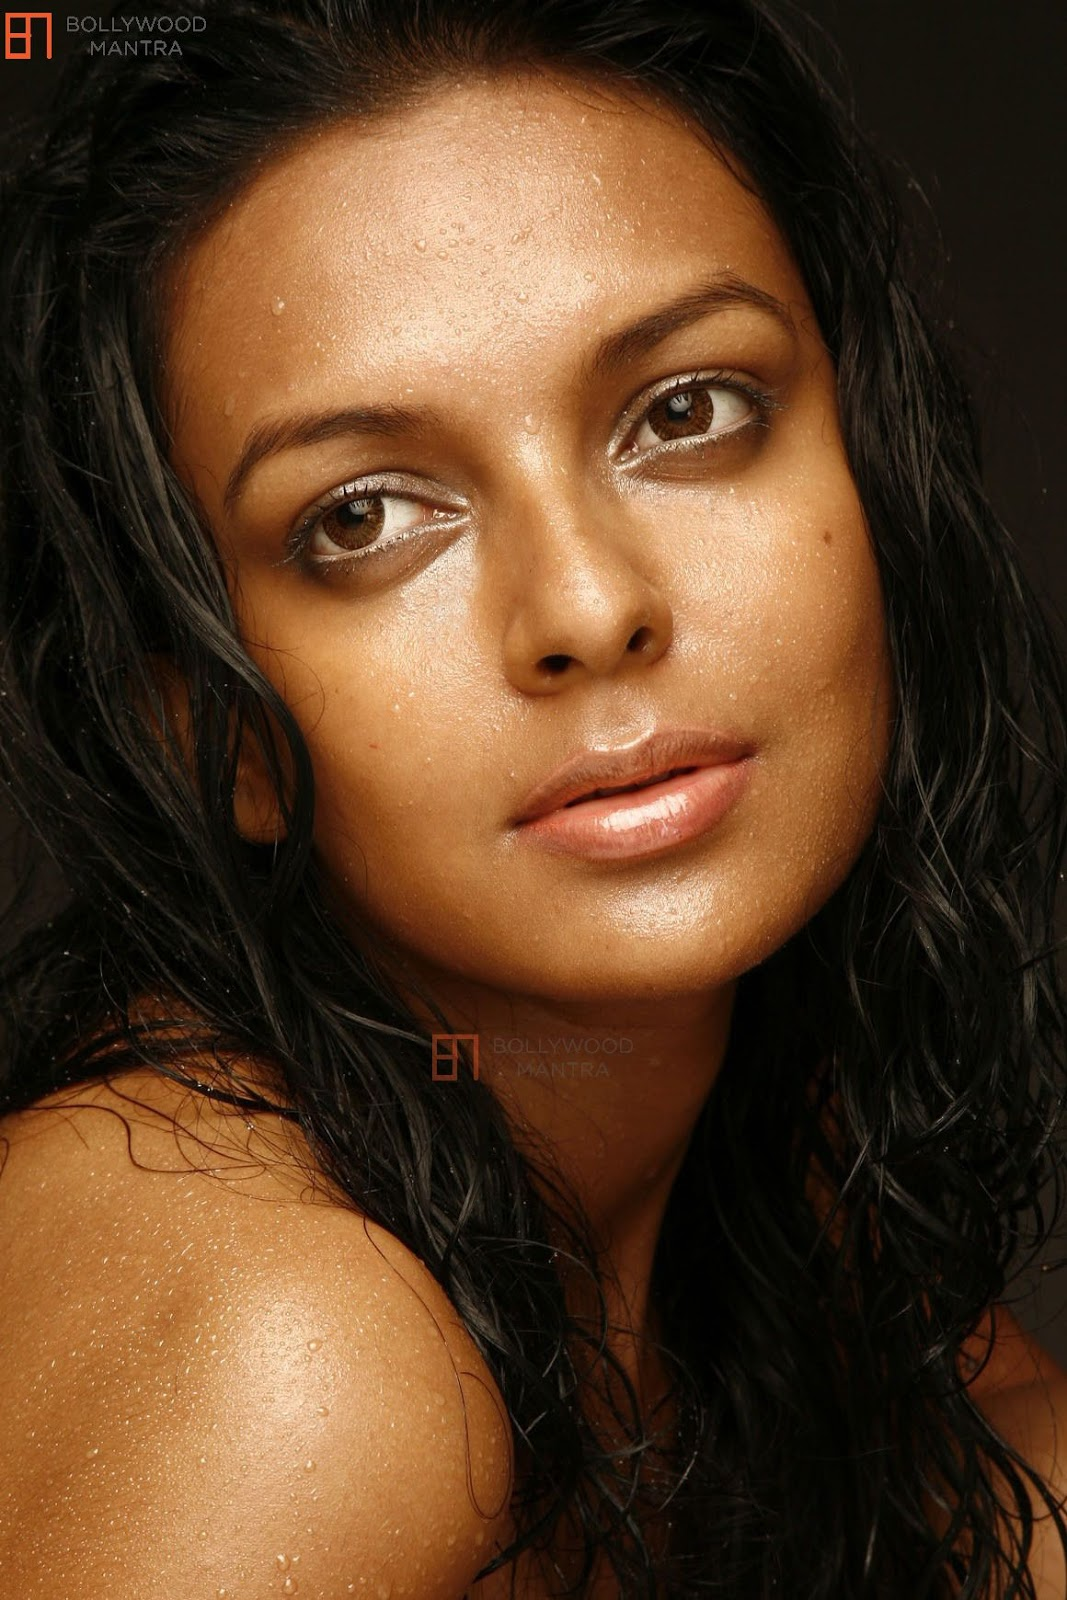 Bidita Bag Wiki Biography Dob Age Height Weight Affairs And More Famous People In India